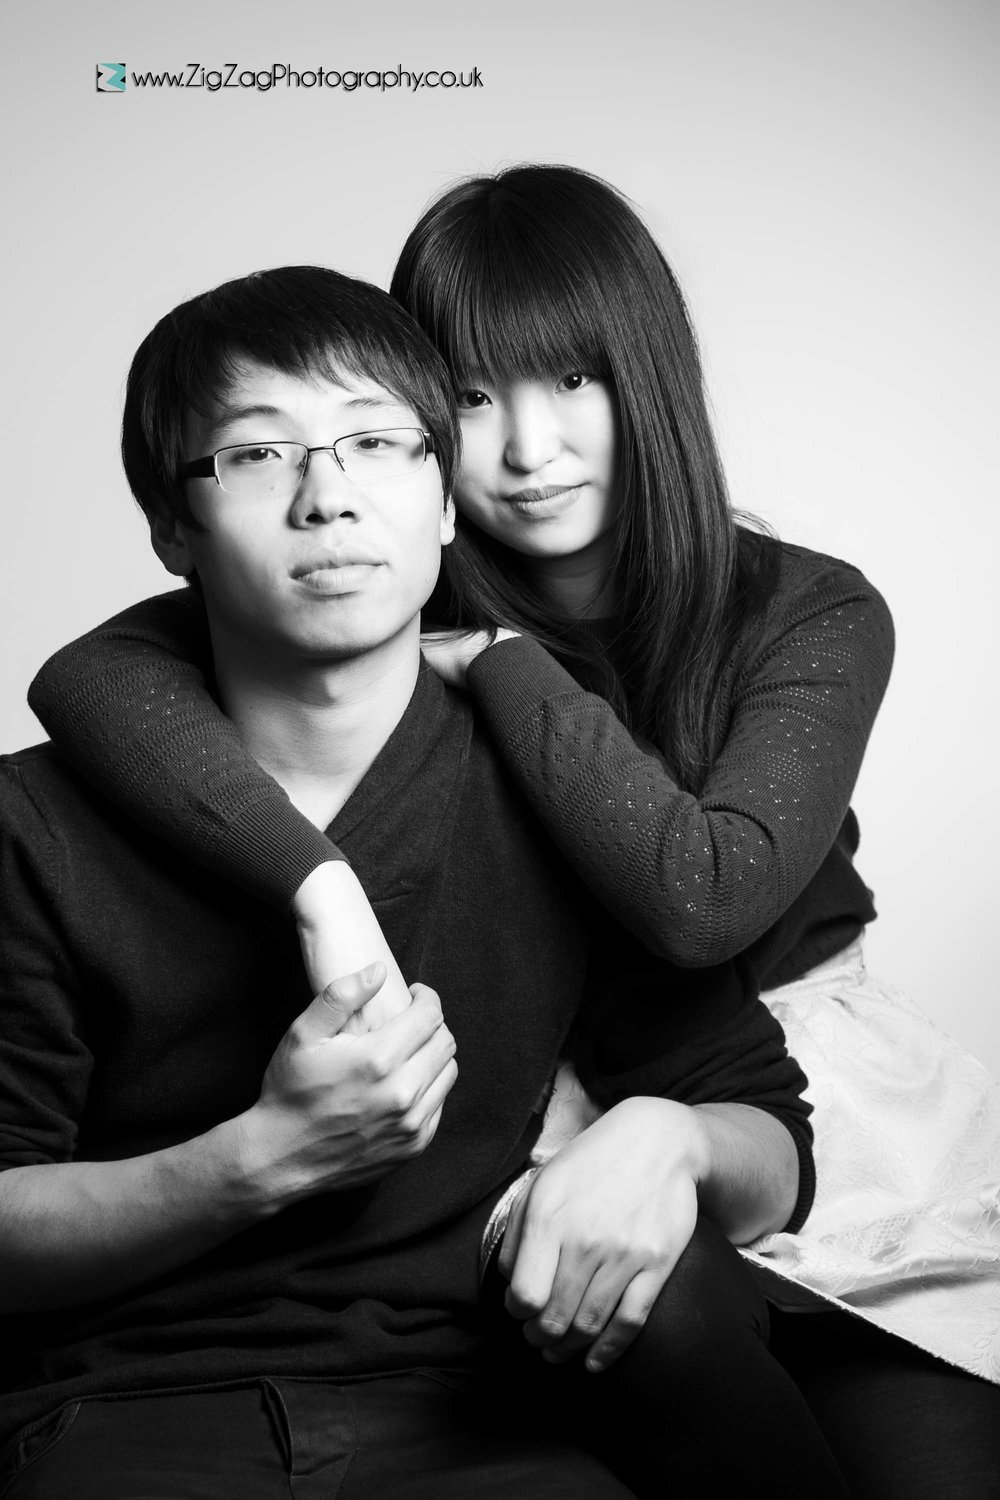 photography-session-leicester-photoshoot-studio-zigzag-couple-man-woman-love-happy-ideas.jpg